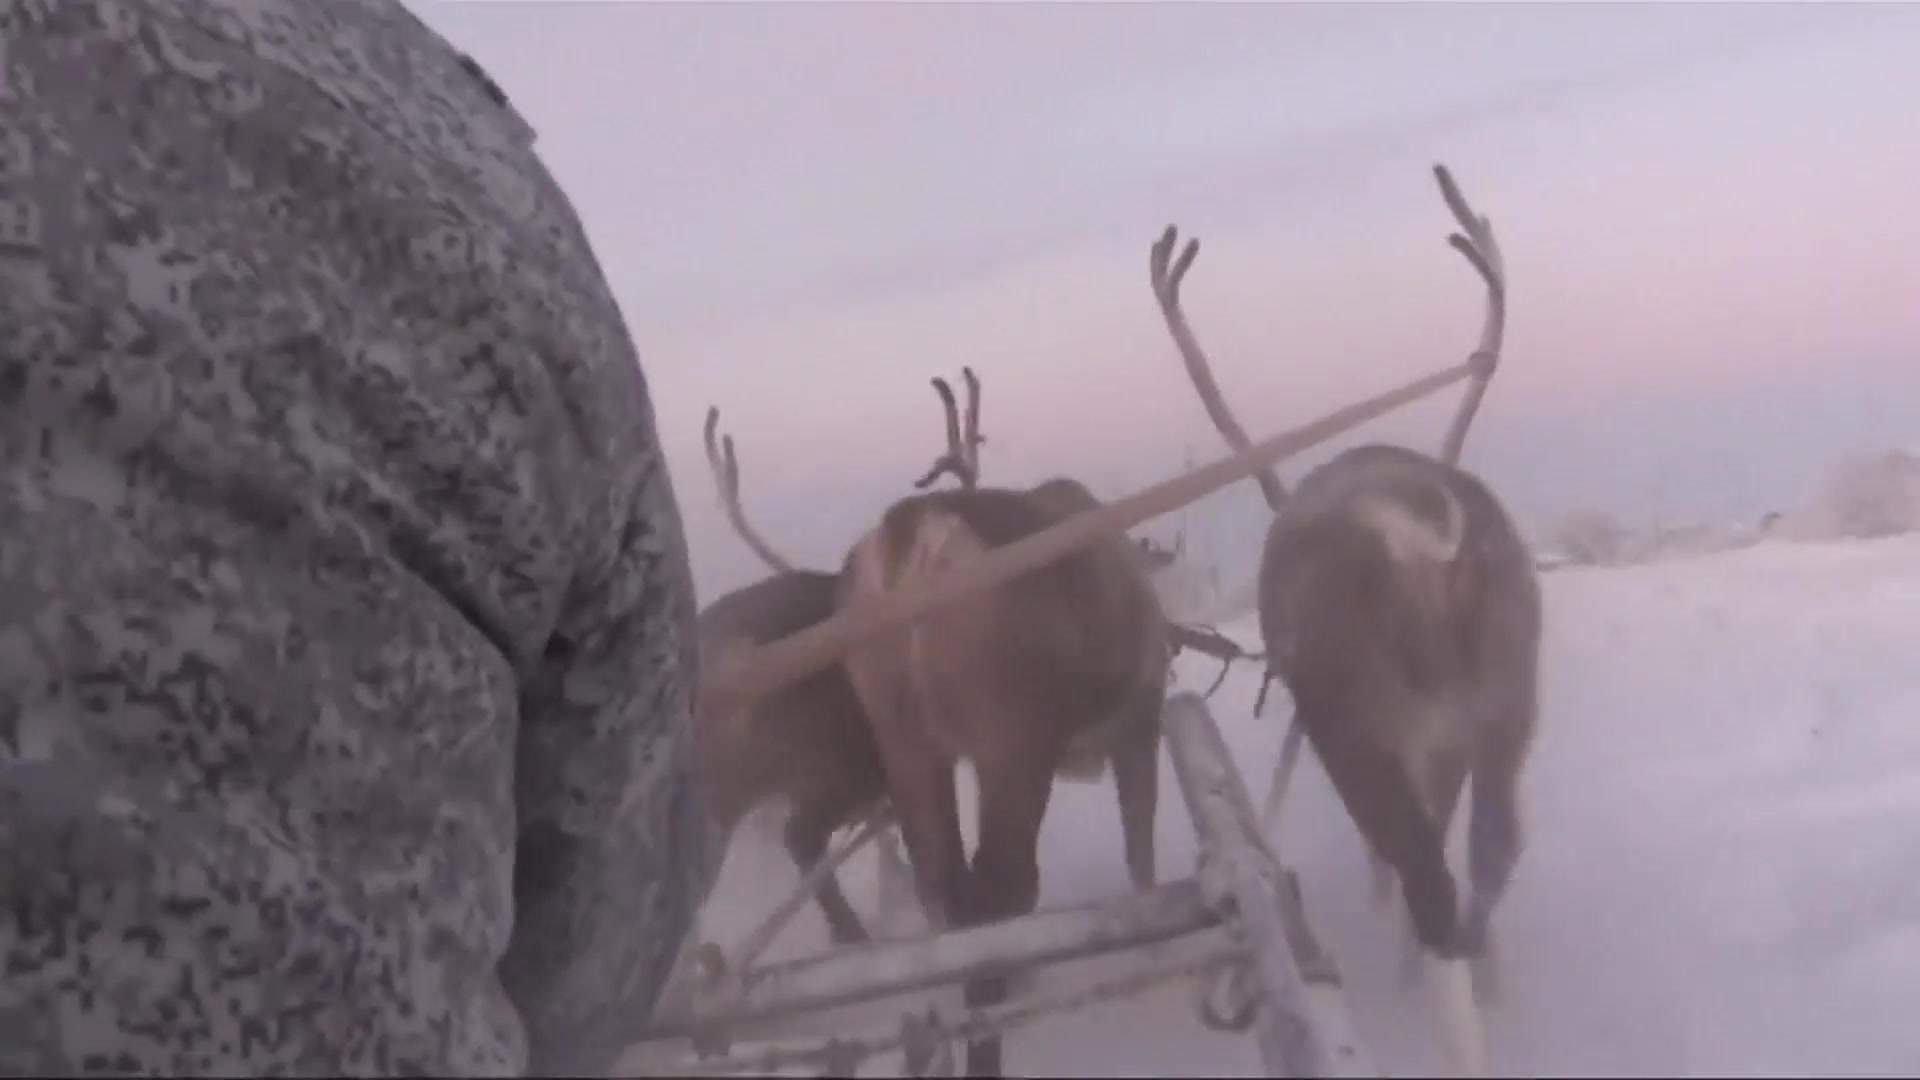 Russia's Arctic Troops Train with Husky Dogs and Reindeer in the Snow